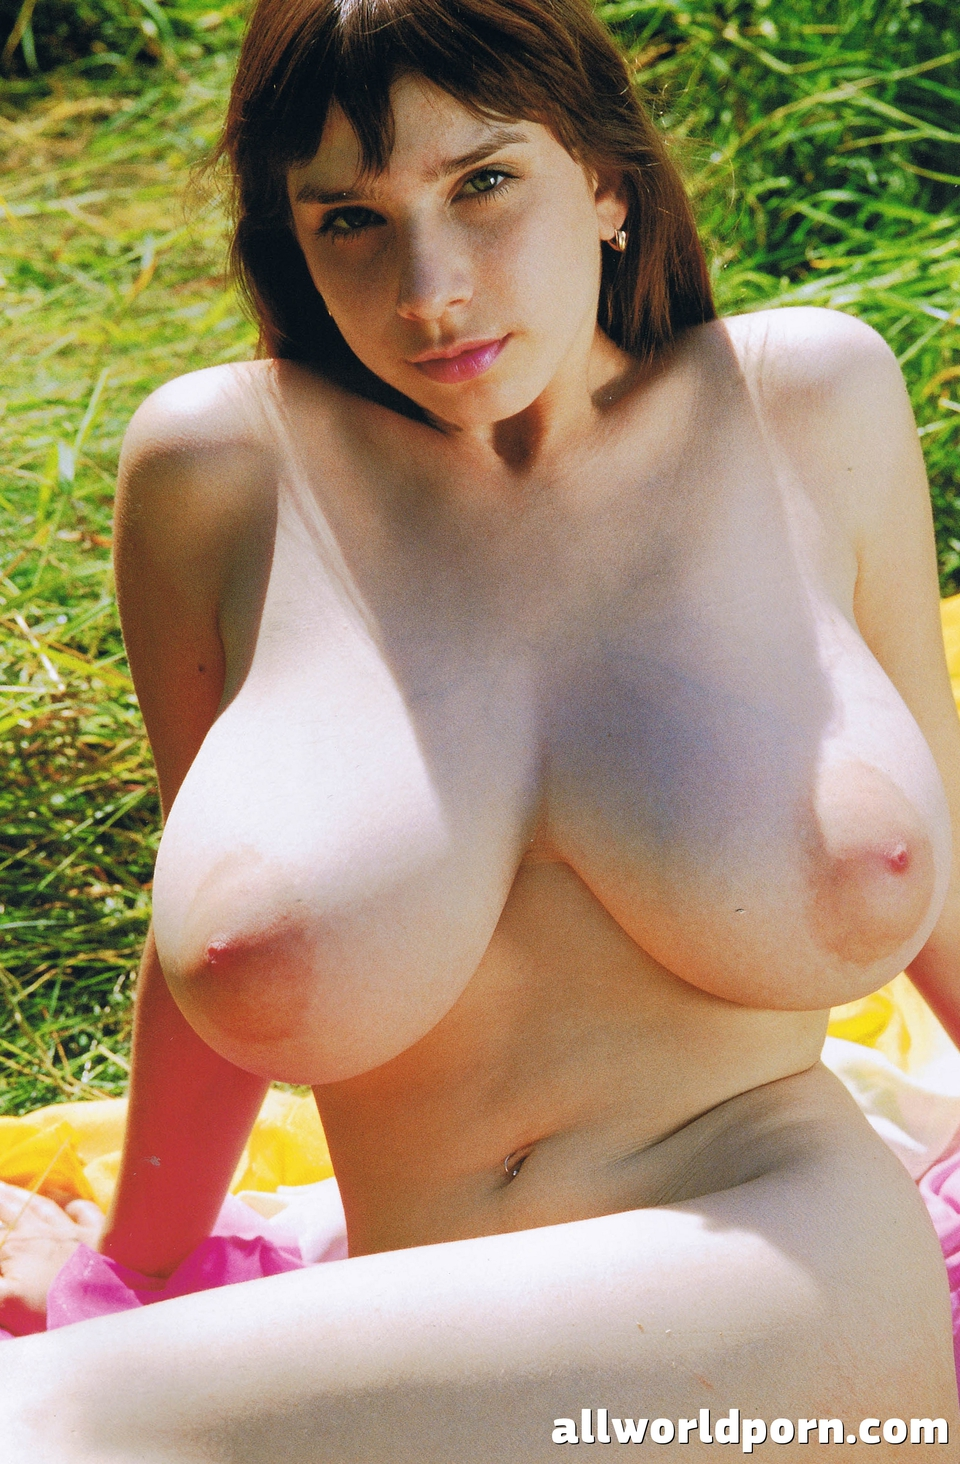 Busty girl photo italian